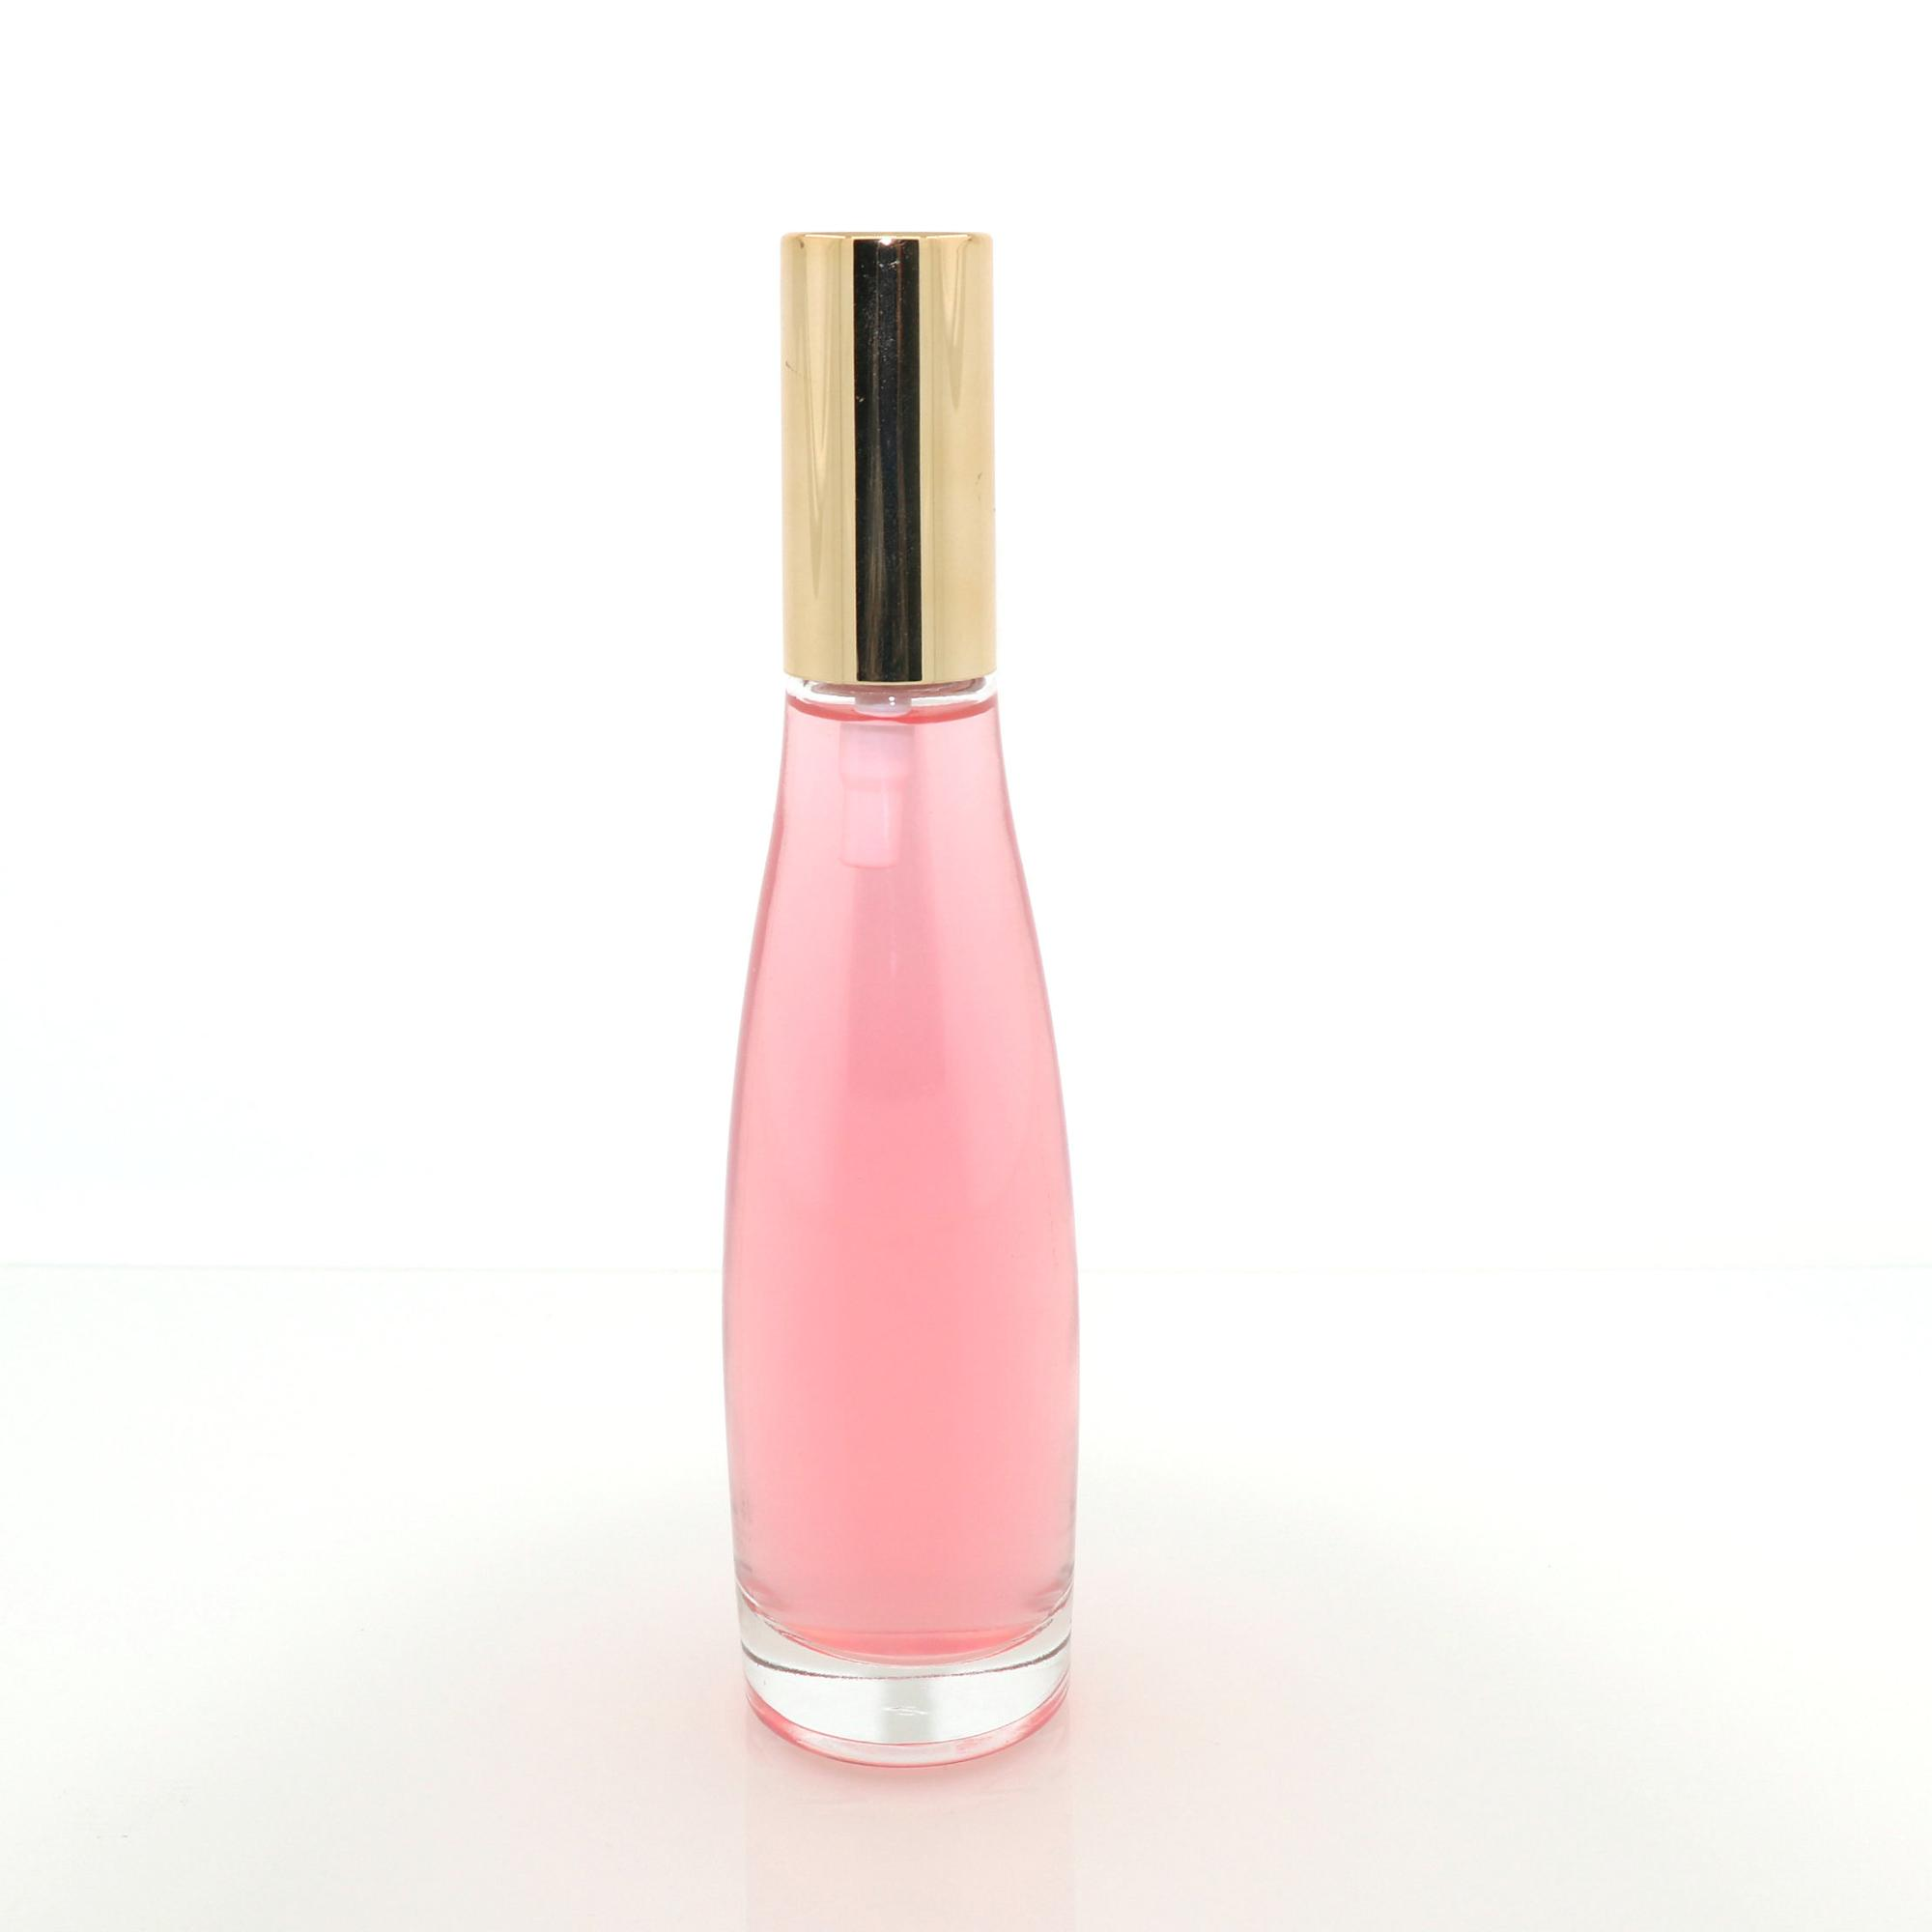 luxury empty perfume glass refill bottle 100ml with gold spray for cosmetic packaging